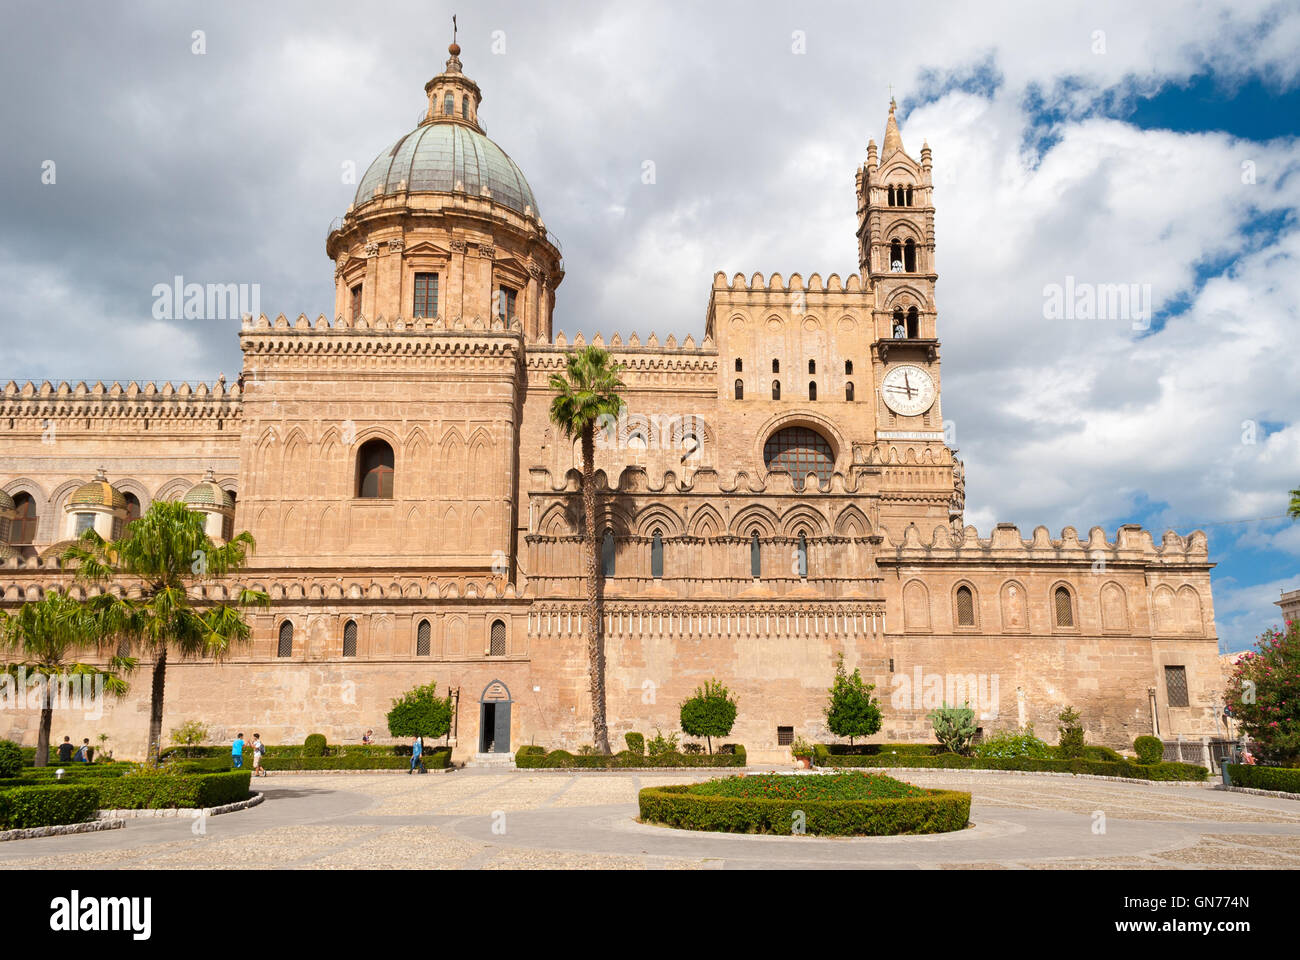 The norman cathedral of Palermo, in Sicily - Stock Image